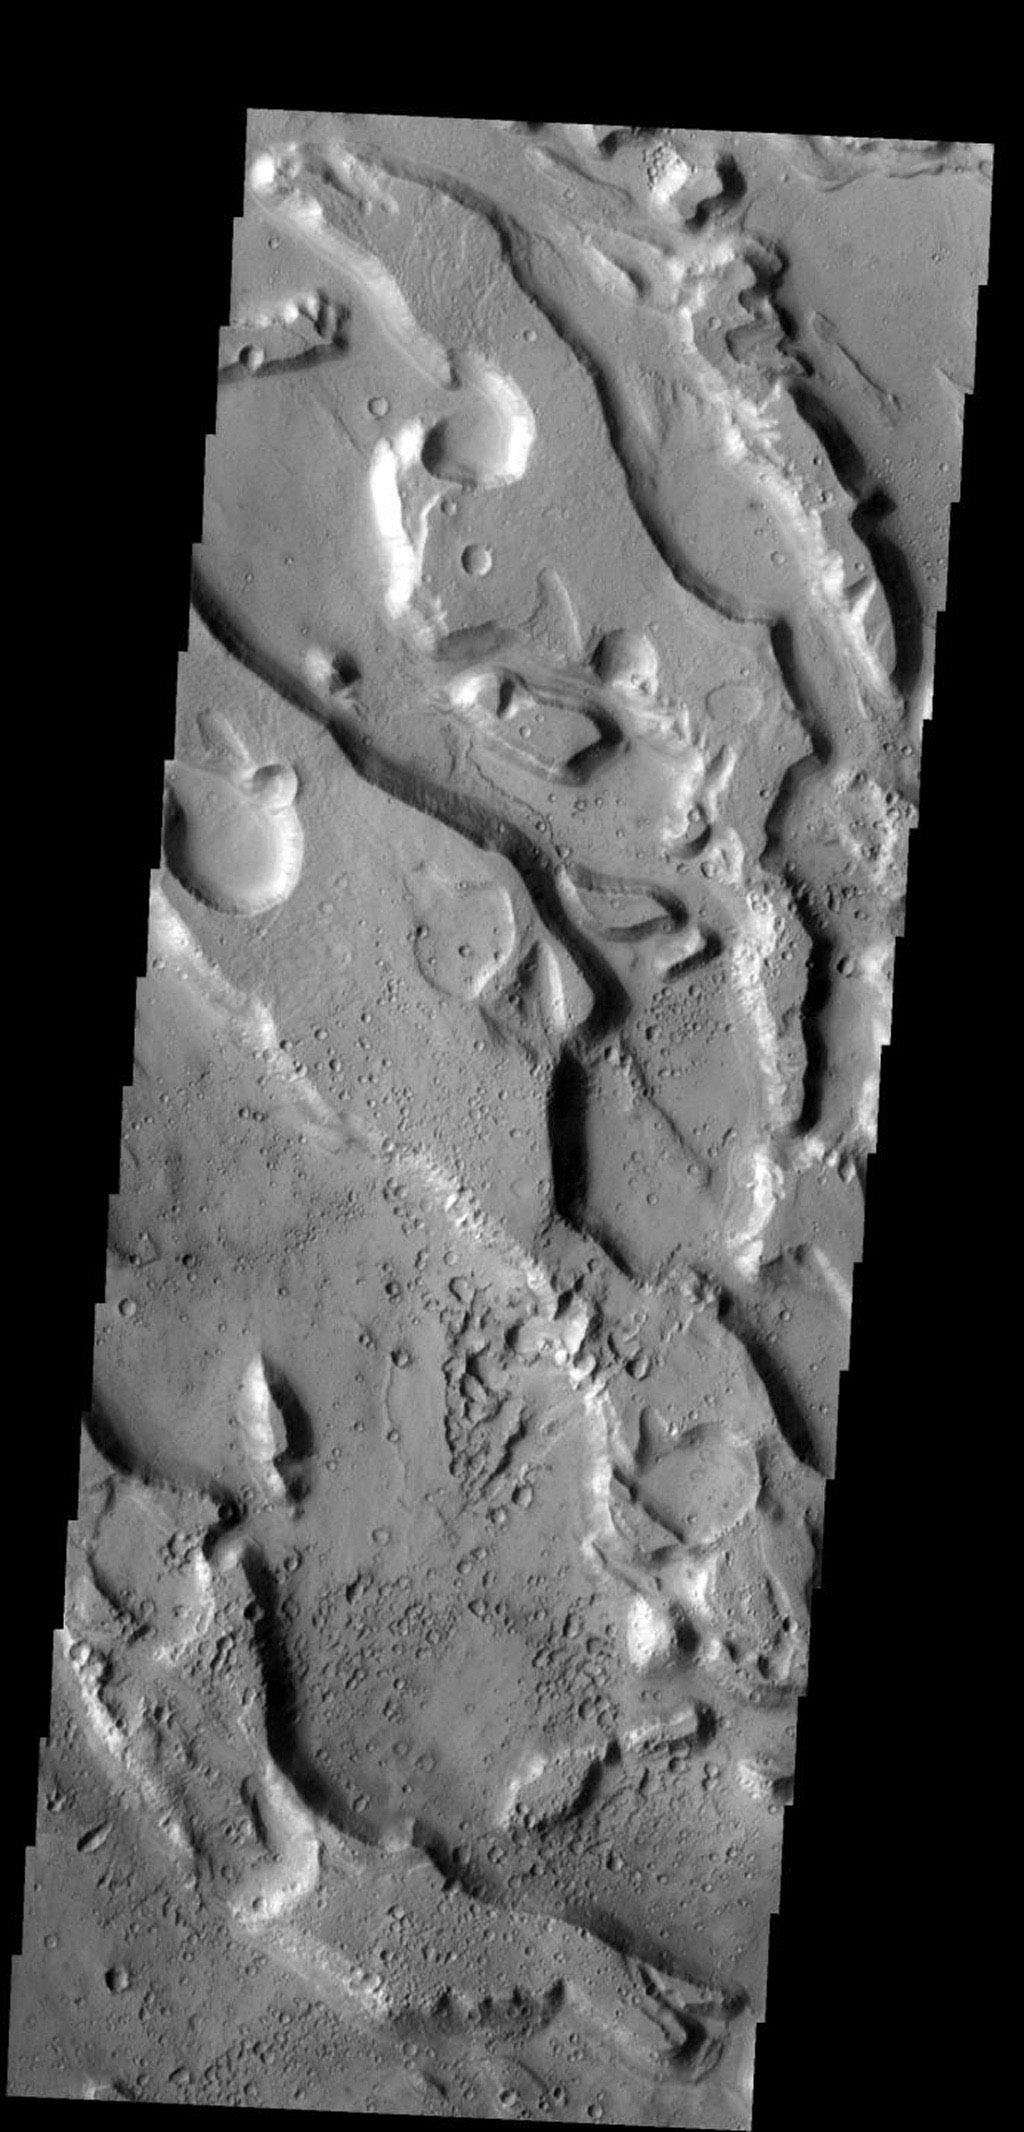 This group of channels are all part of Ares Vallis on Mars as seen by NASA's 2001 Mars Odyssey spacecraft.